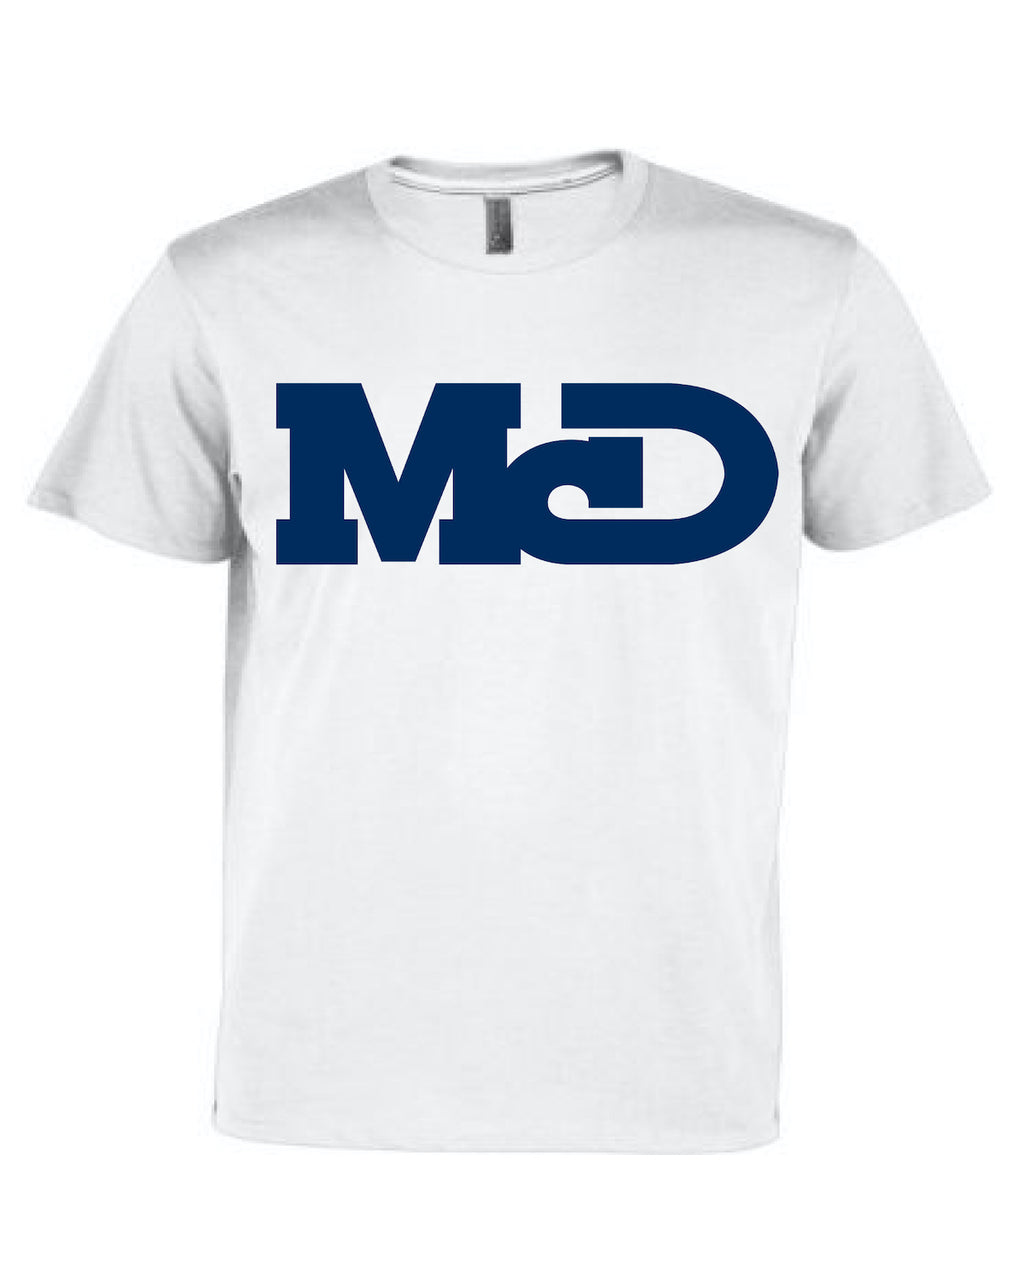 MCD WHITE  SHORT SLEEVE TSHIRT